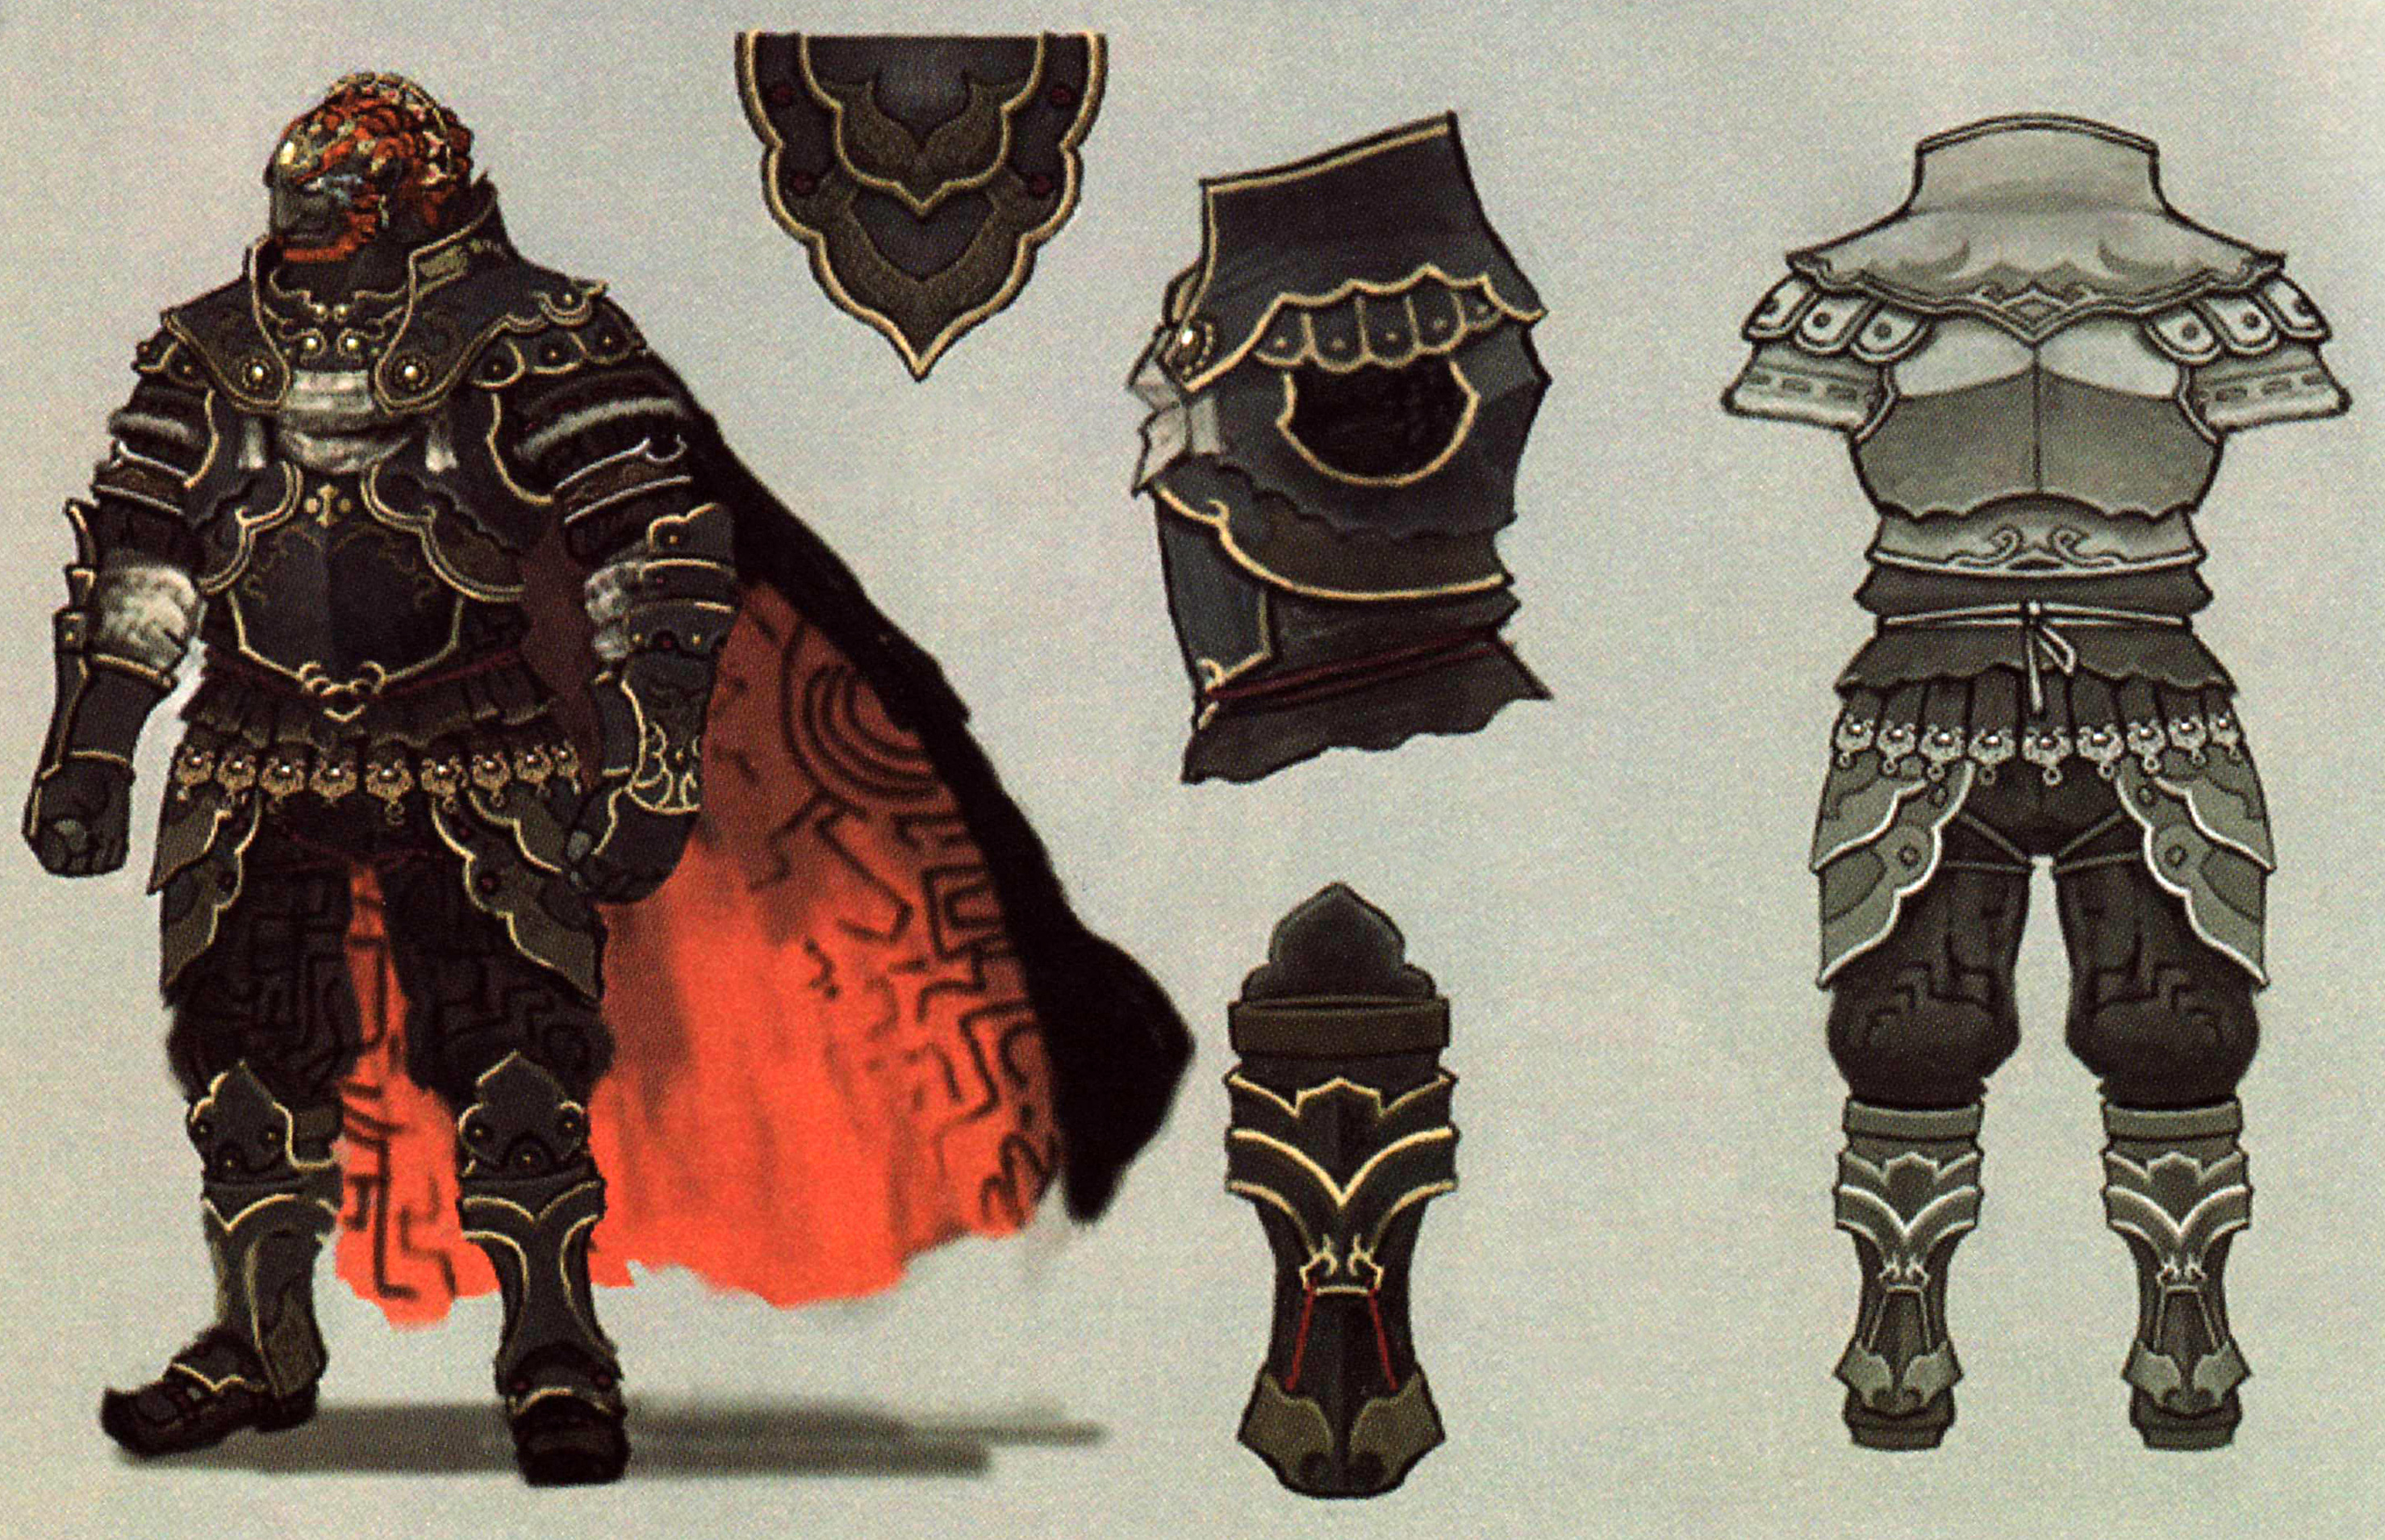 Twilight Princess Link Vs Ganon